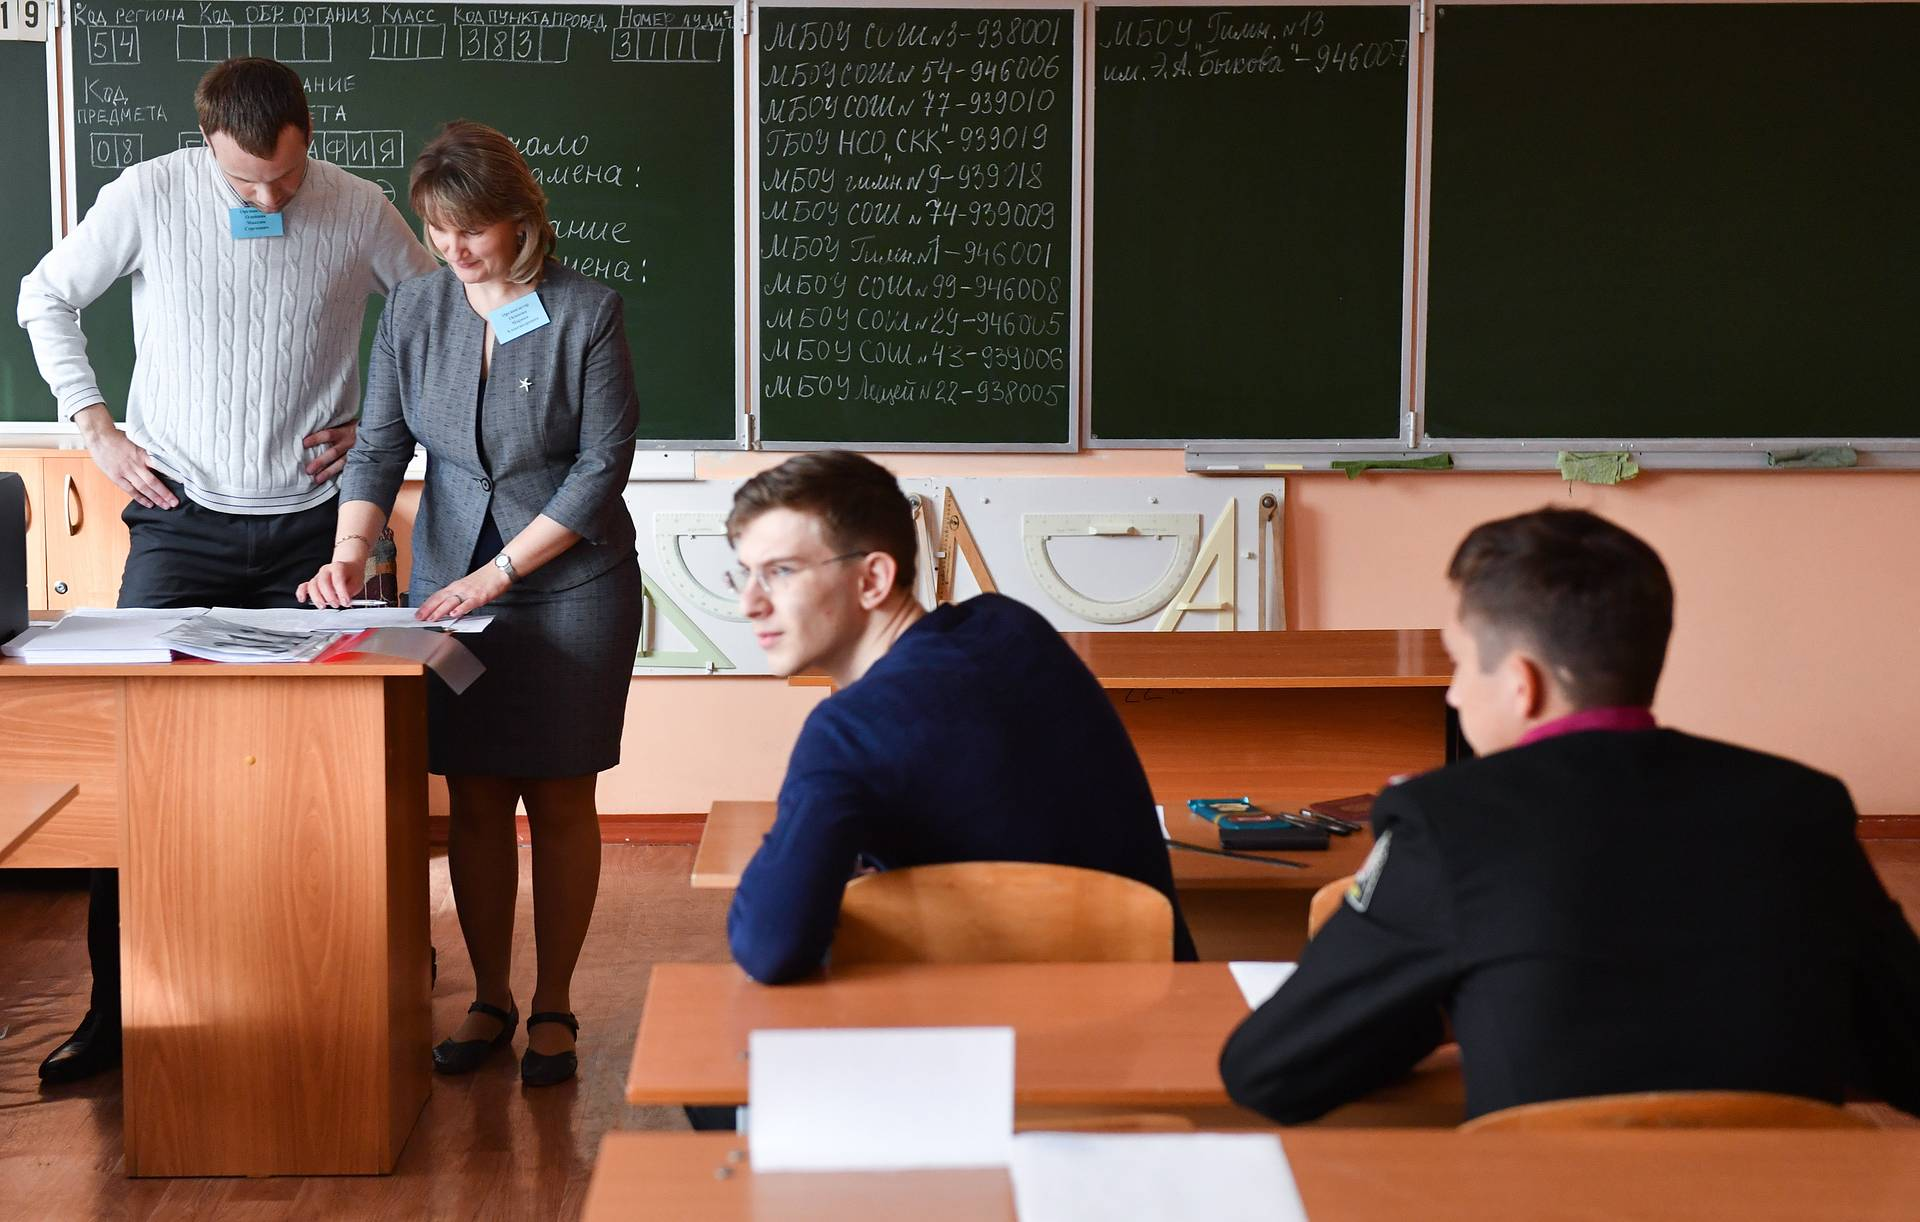 Secondary school students take Unified State Exam in Geography in Novosibirsk, Russia